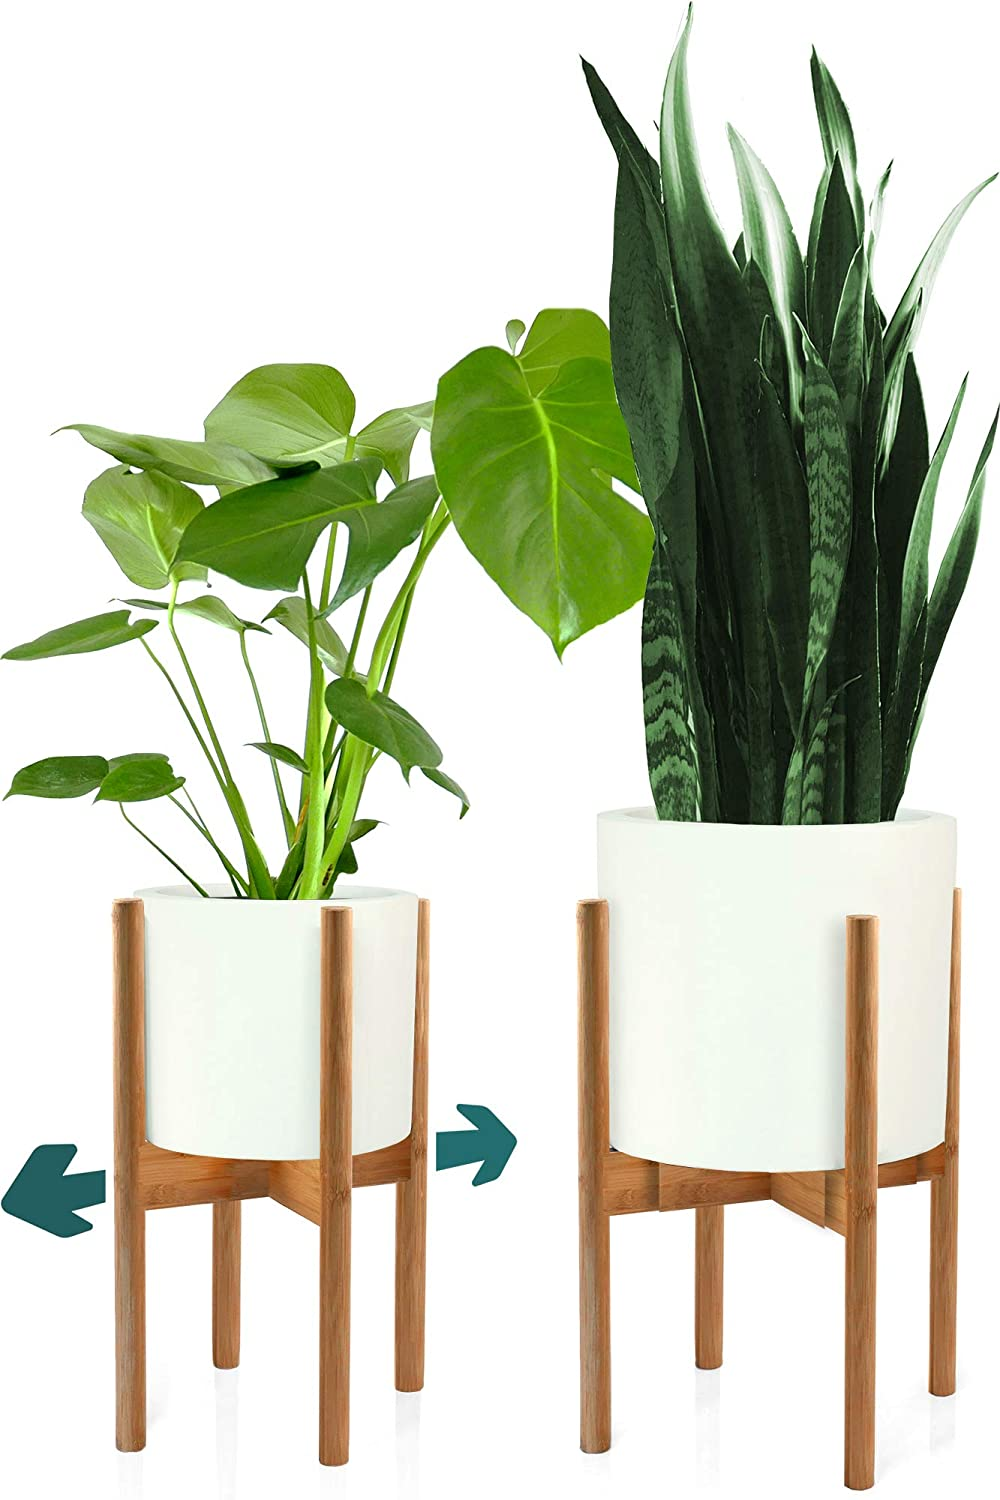 """FOX & FERN Modern Adjustable Plant Stand - Adjust Width 8"""" up to 12"""" - Bamboo - EXCLUDING White Ceramic Plant Pot"""